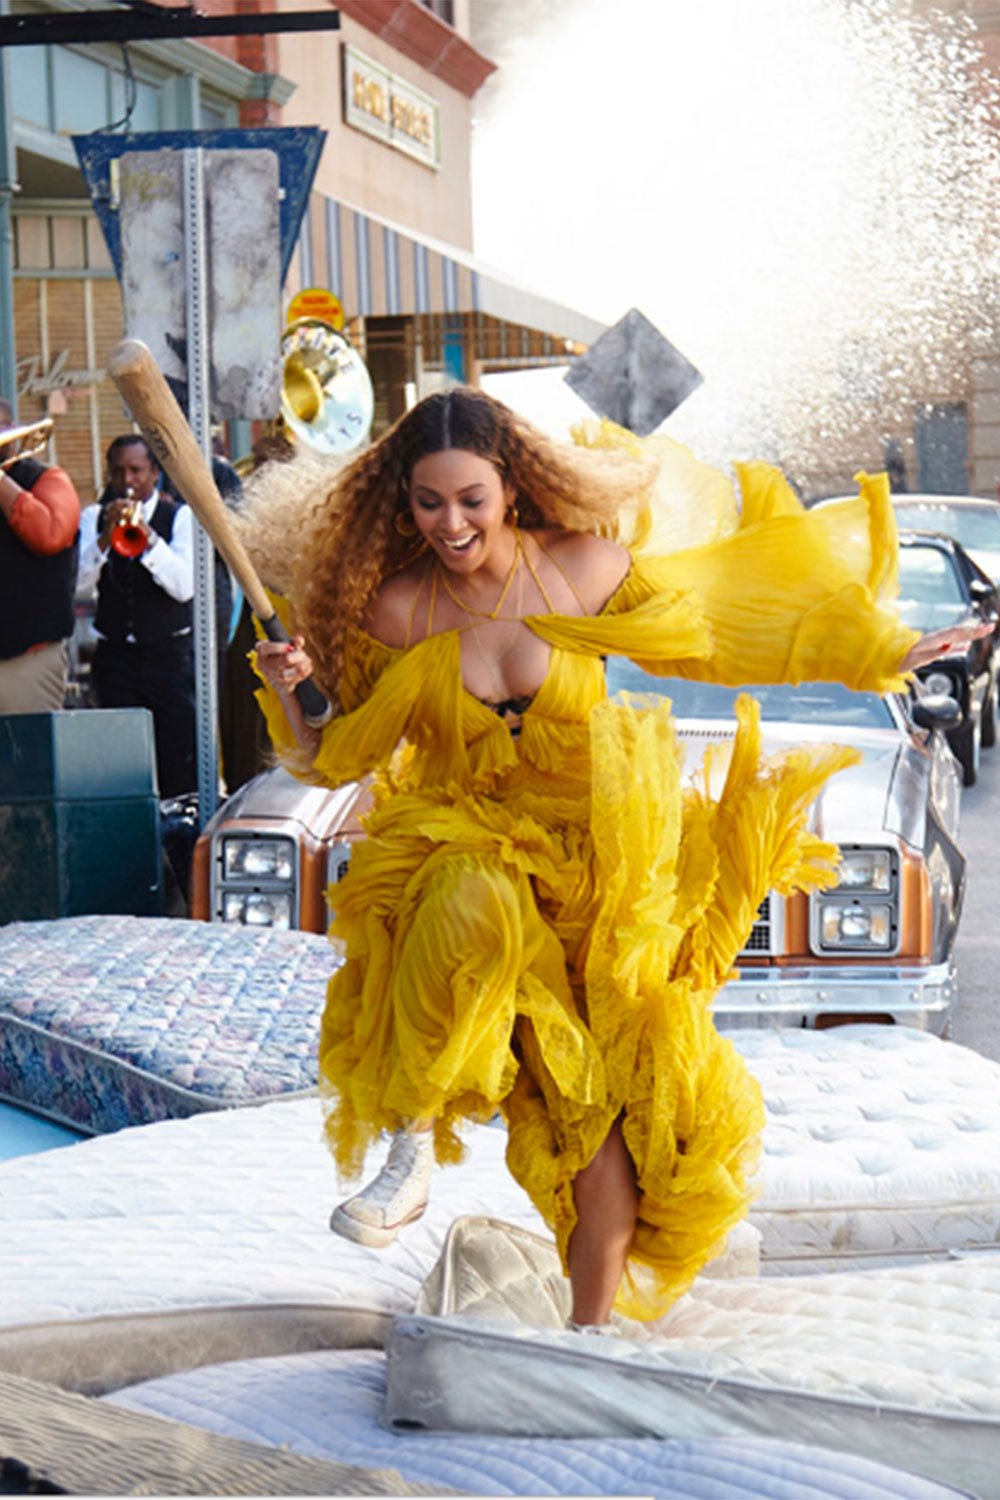 You *need* to see Beyone's hilarious behind-the-scenes Lemonade pictures: https://t.co/hpVHwIKnrc https://t.co/D1Dpb5Dn7R